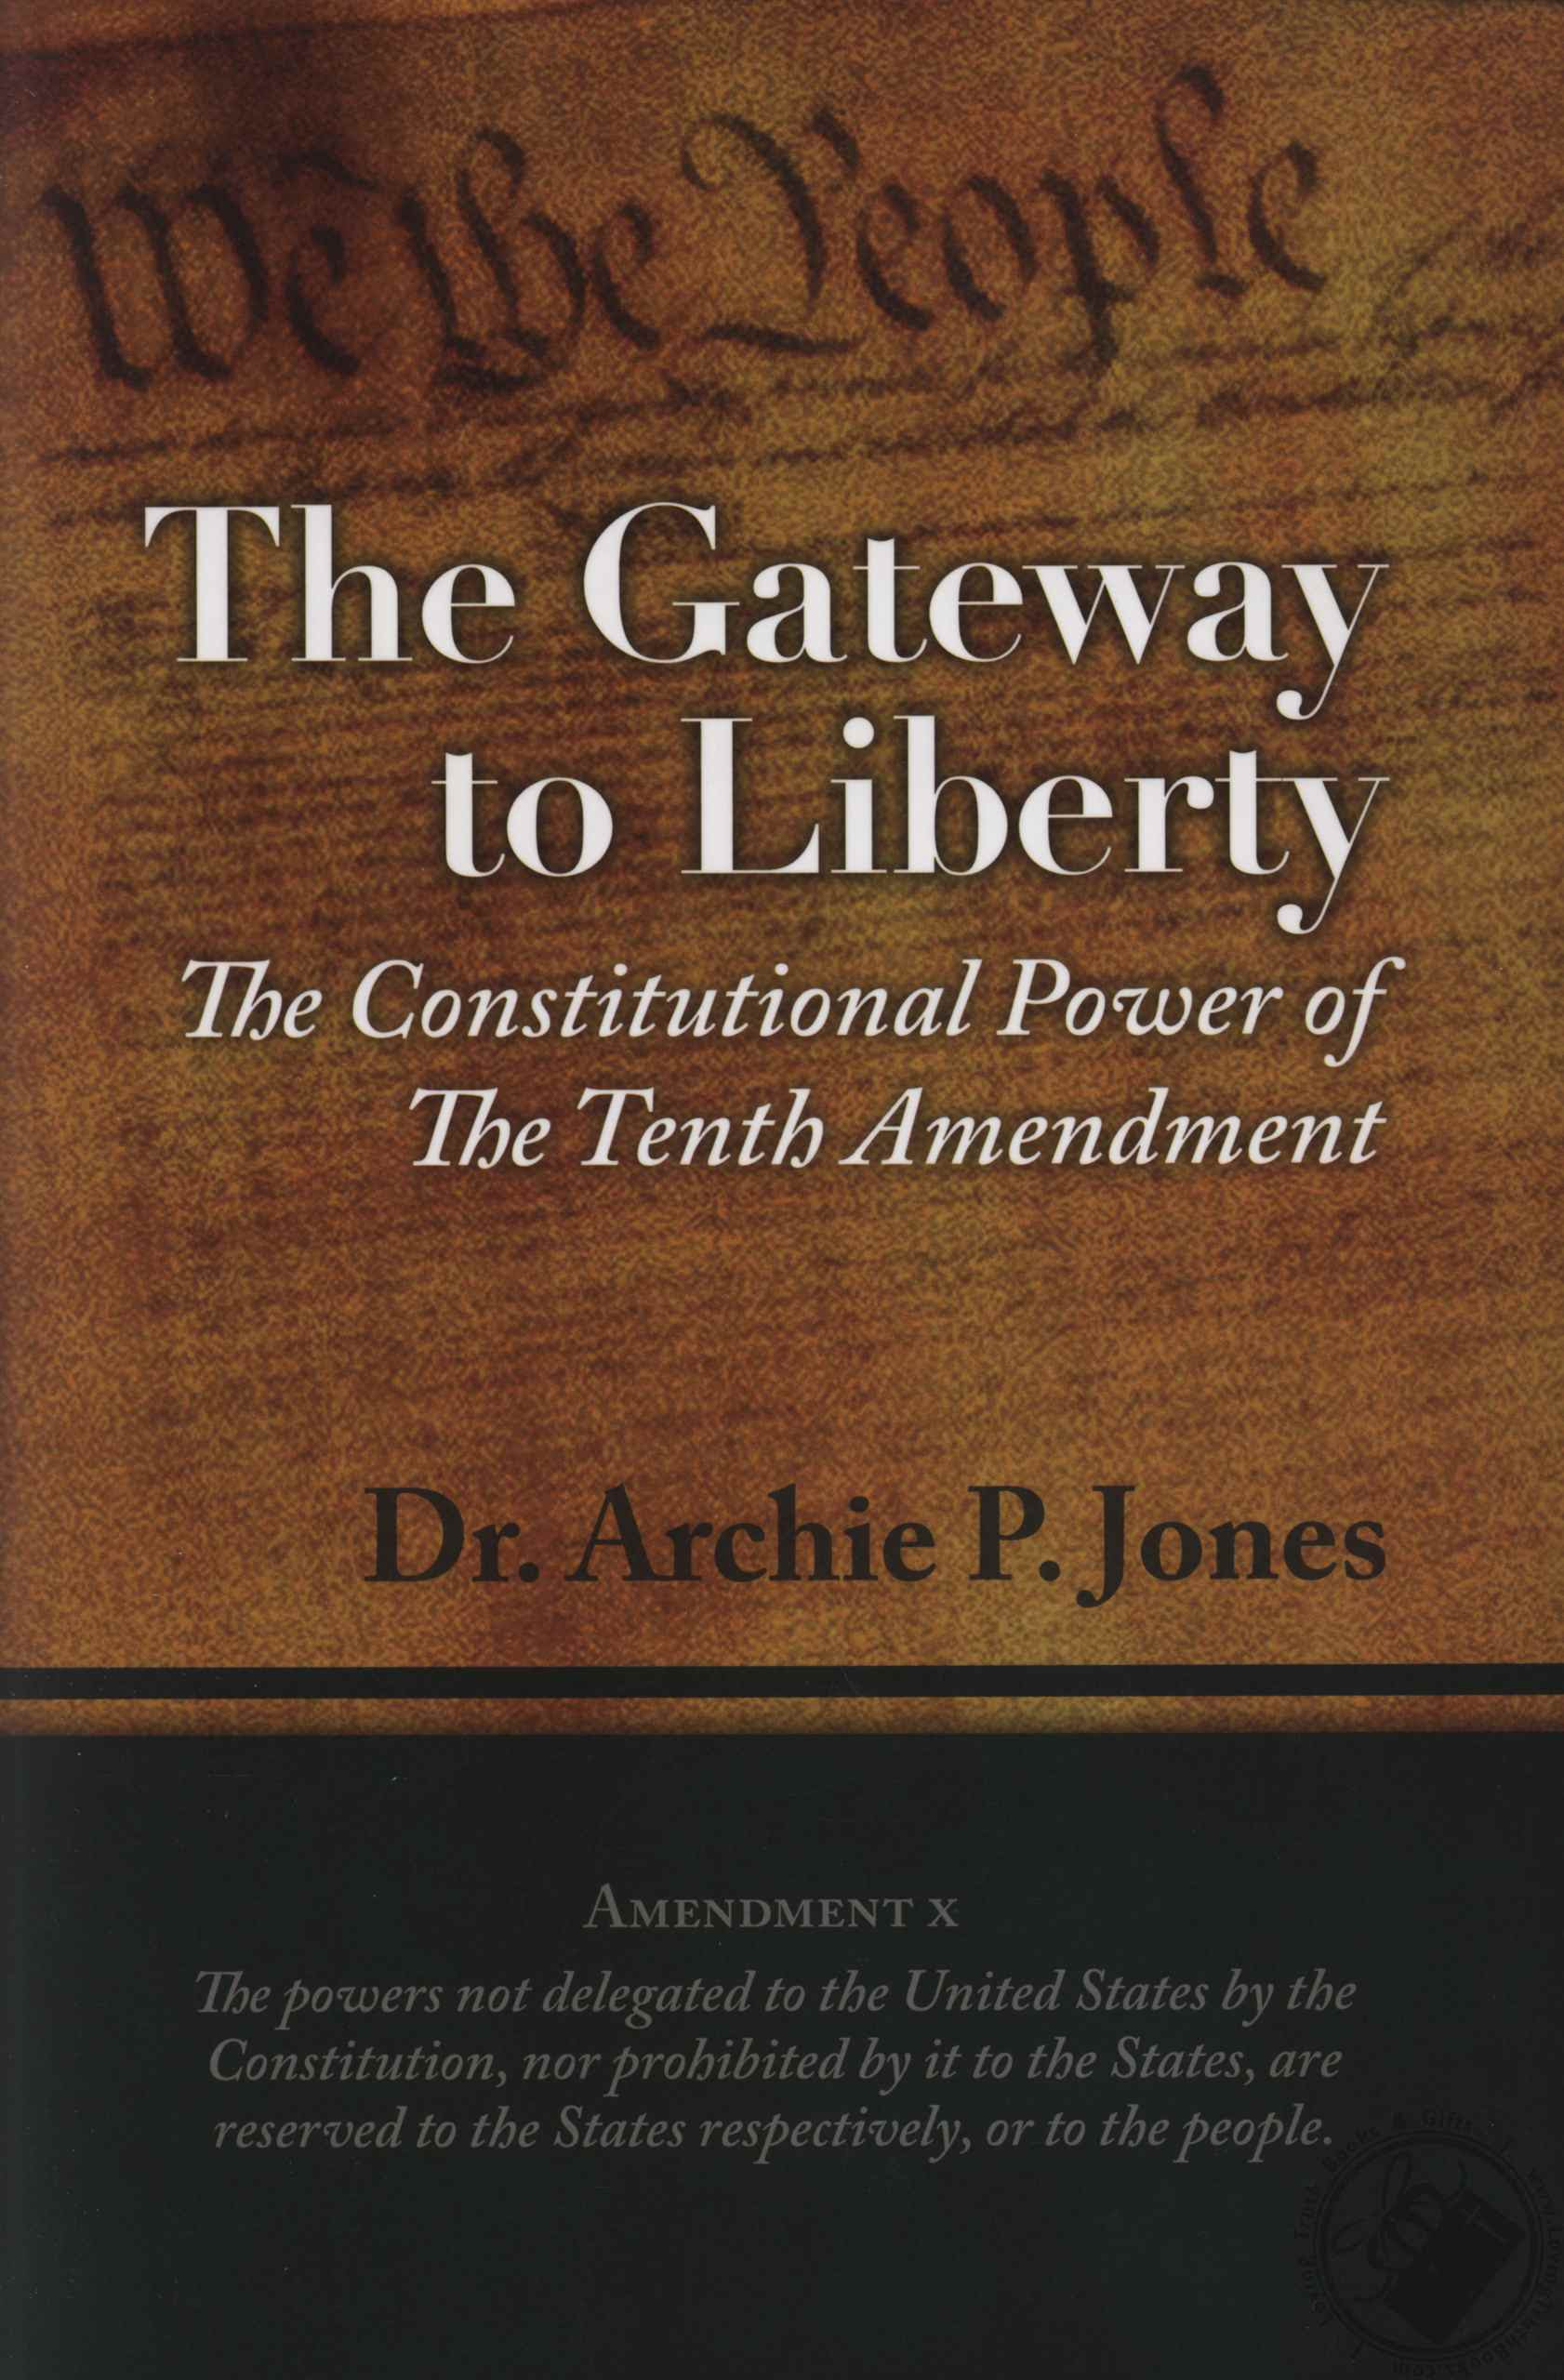 Gateway To Liberty The Constitutional Power Of The 10th Amendment